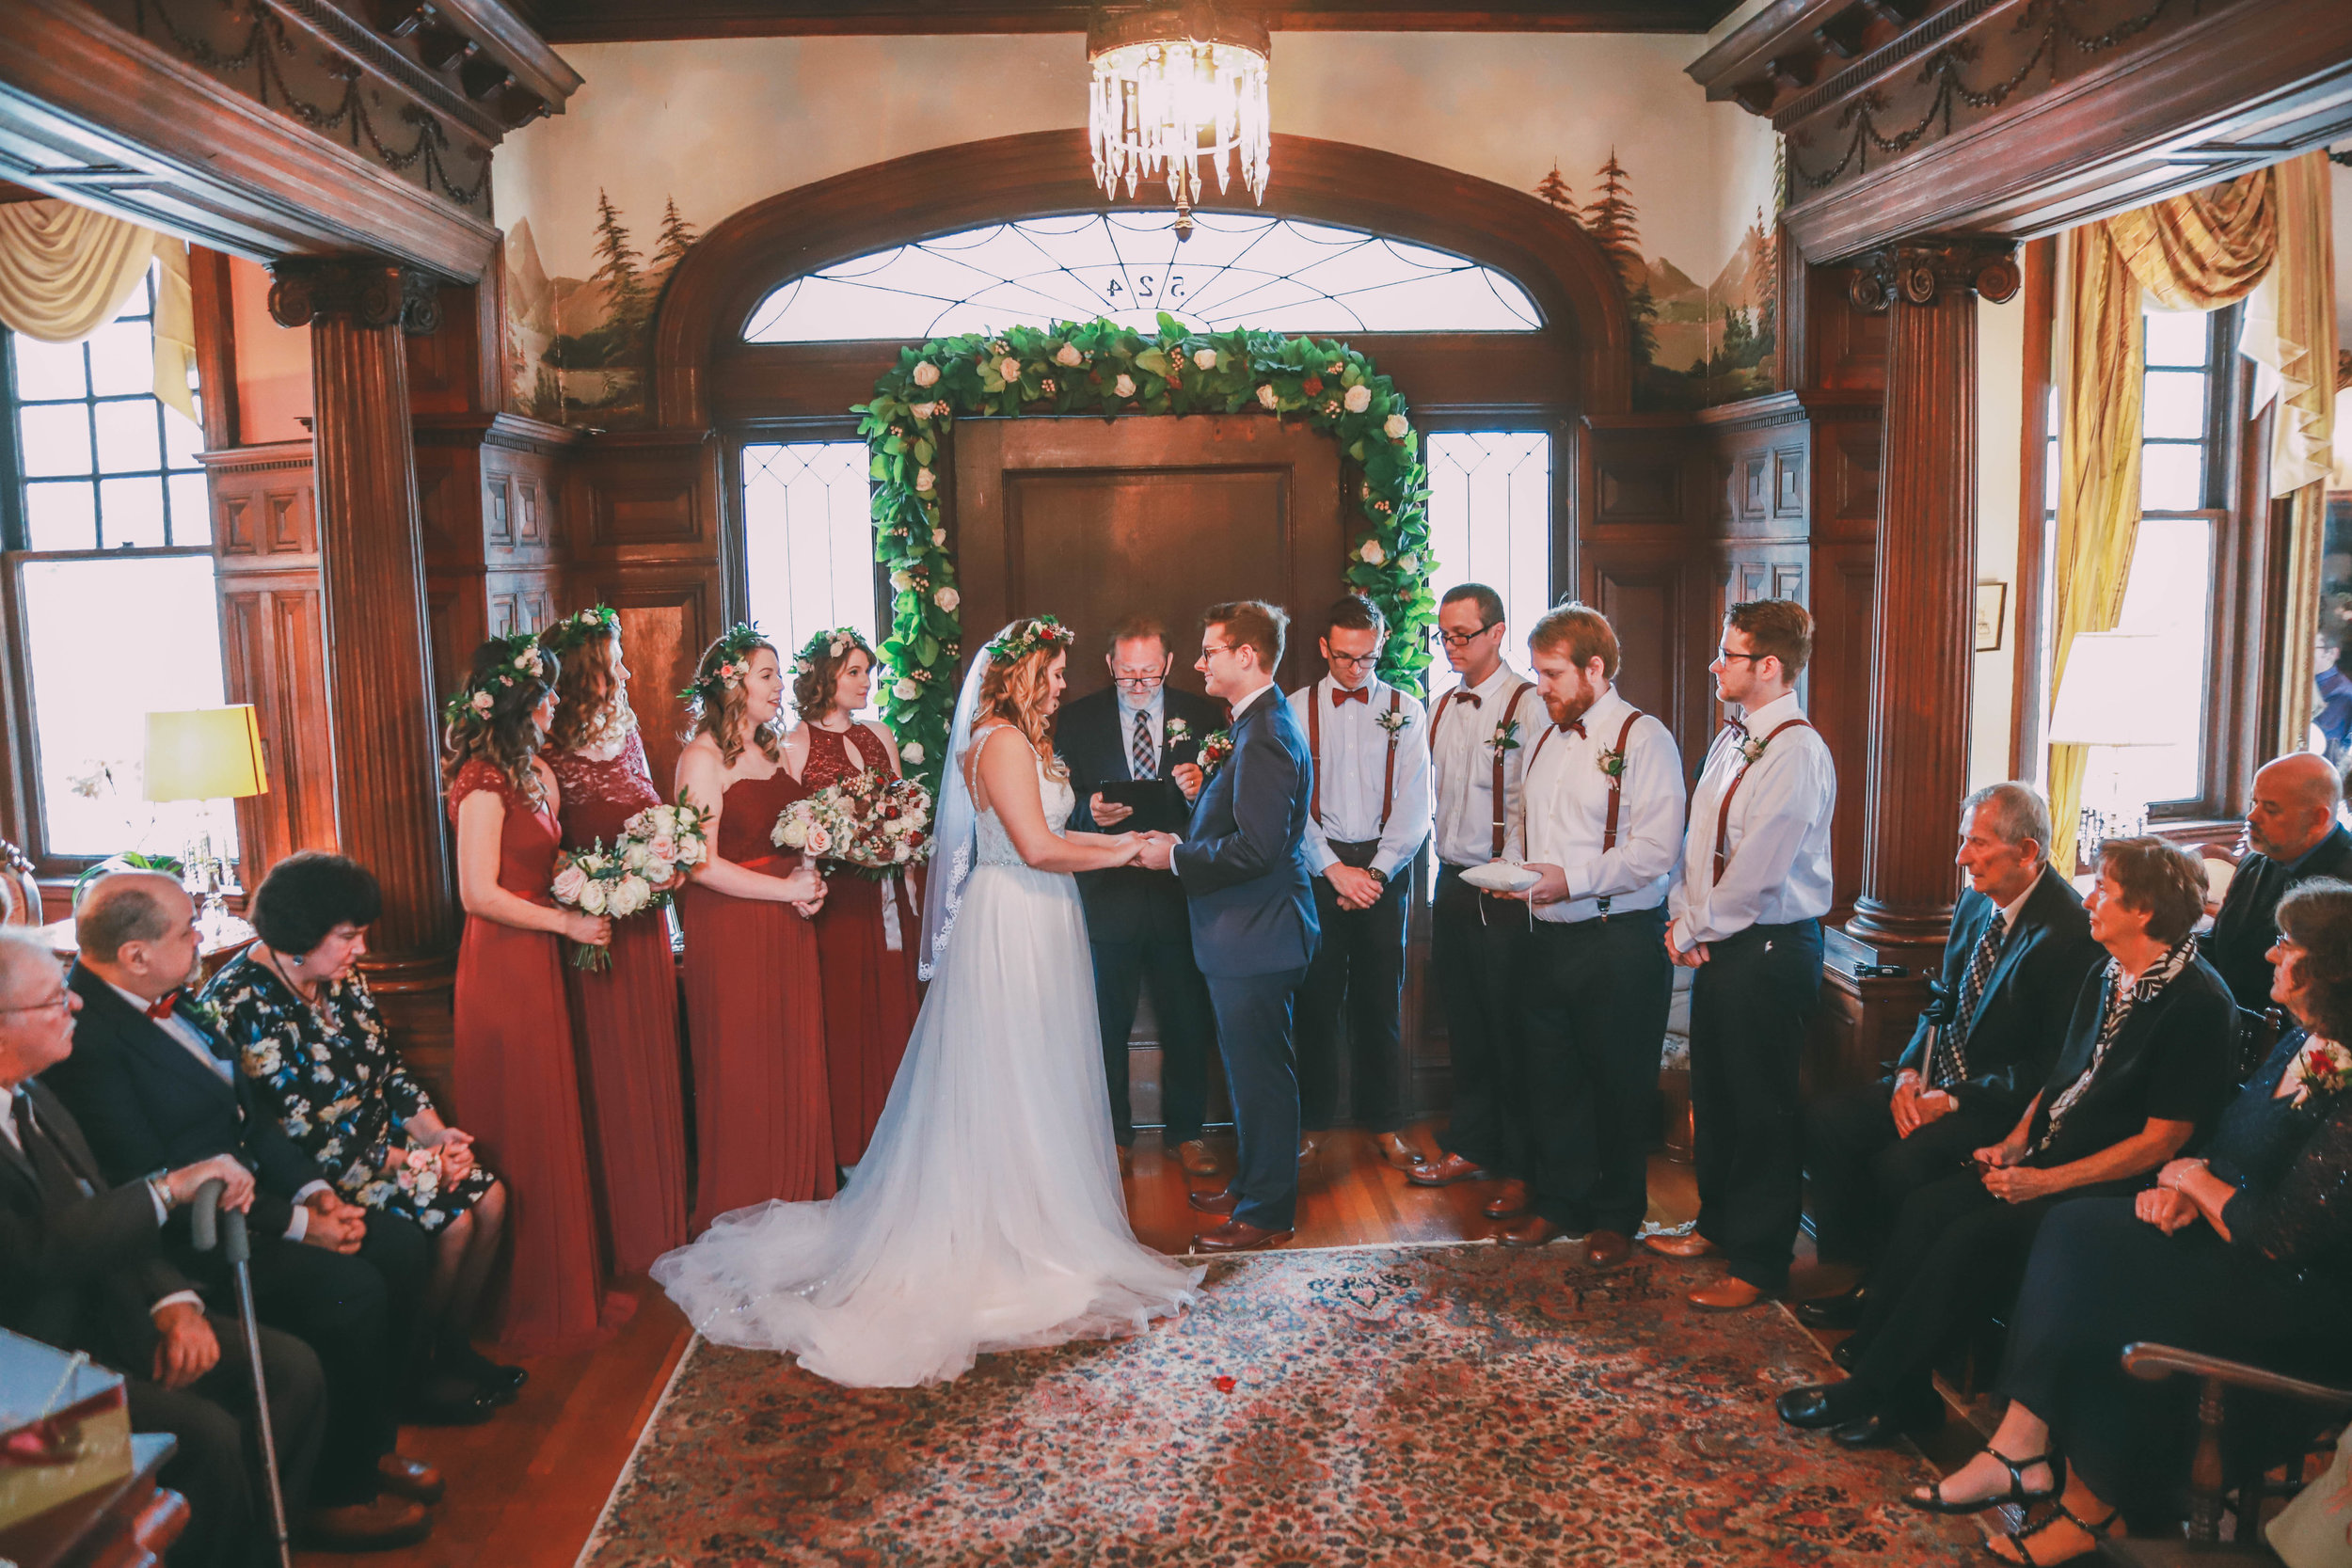 Bridgette+Jacob-169.jpg